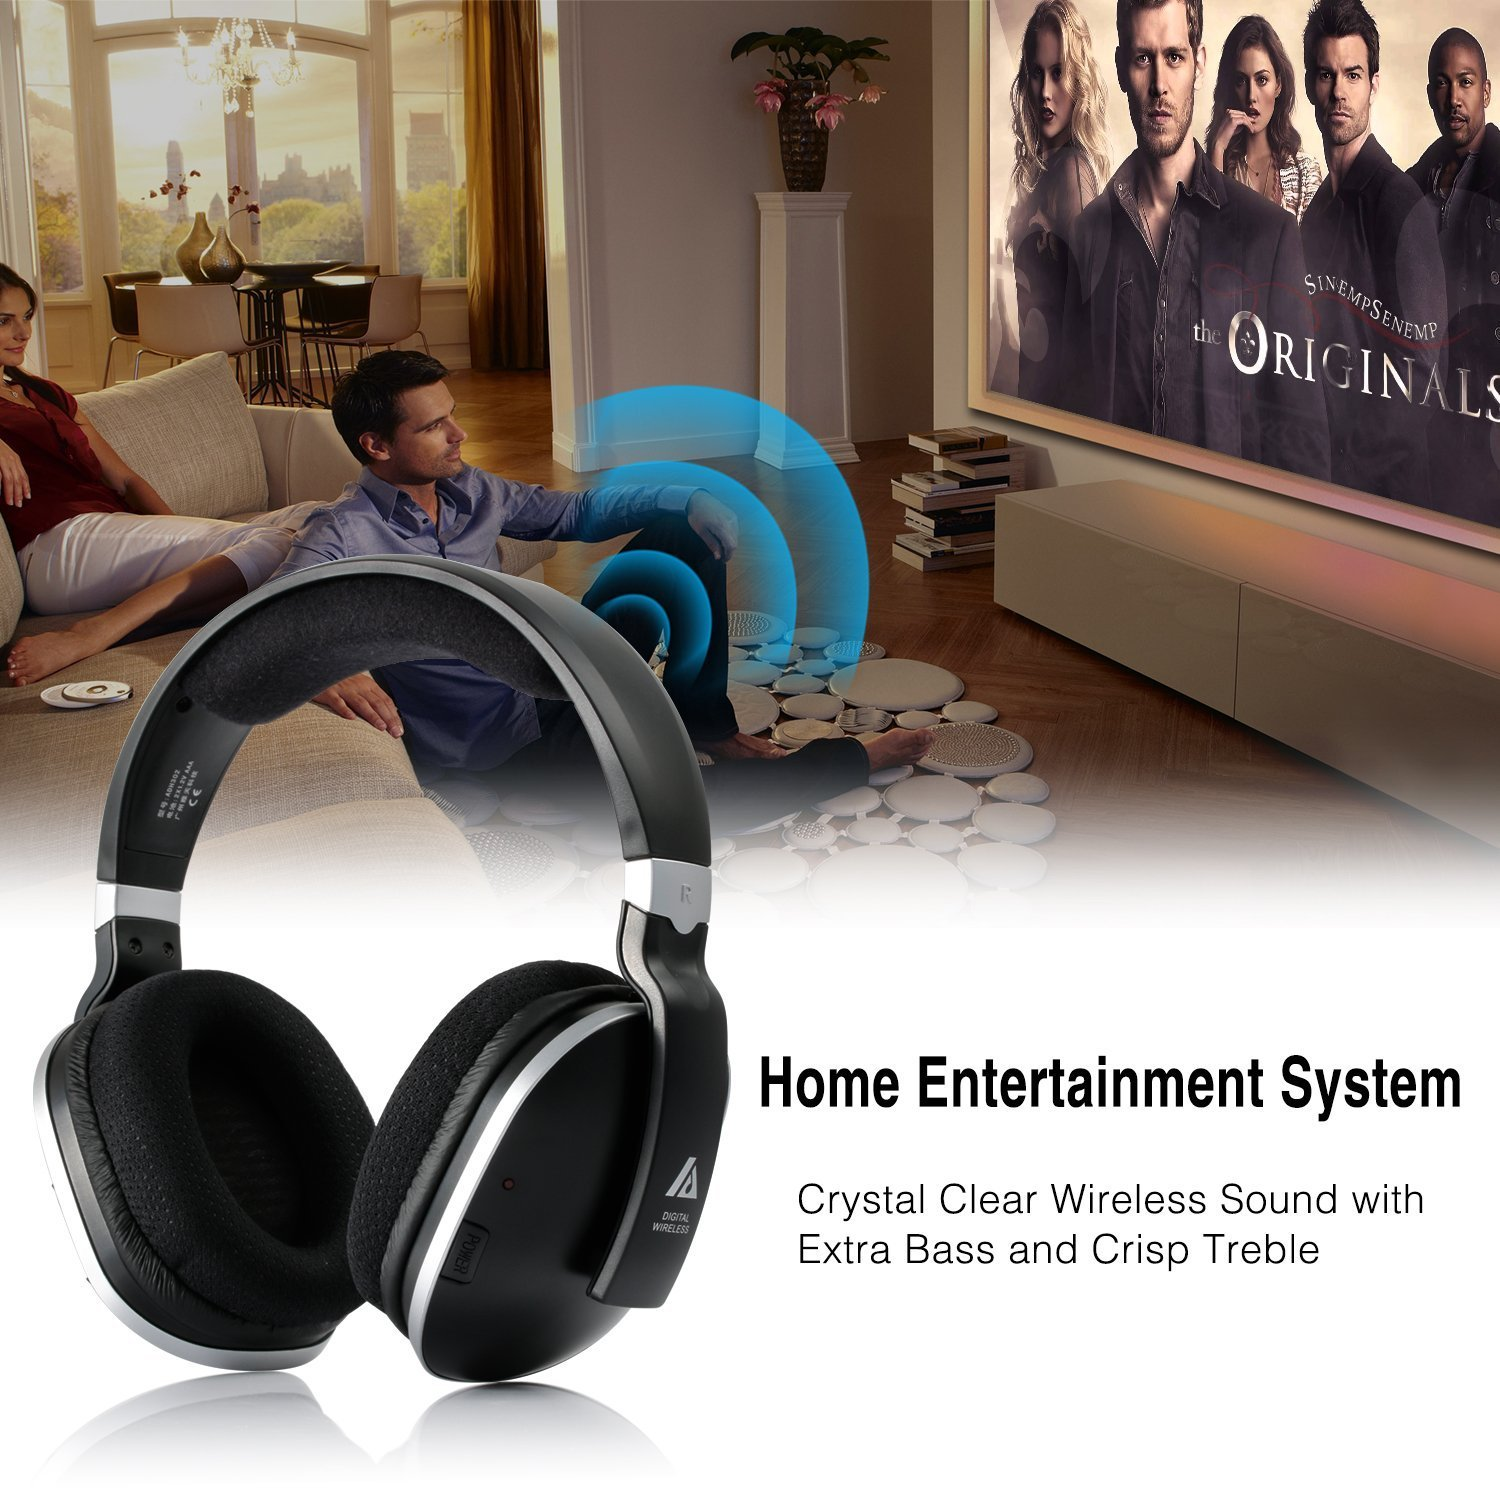 Wireless TV Headphones Over Ear Headsets - Digital Stereo Headsets with 2.4GHz RF Transmitter, Charging Dock, 100ft Wireless Range and Rechargeable 20 Hour Battery, Black by ARTISTE (Image #5)